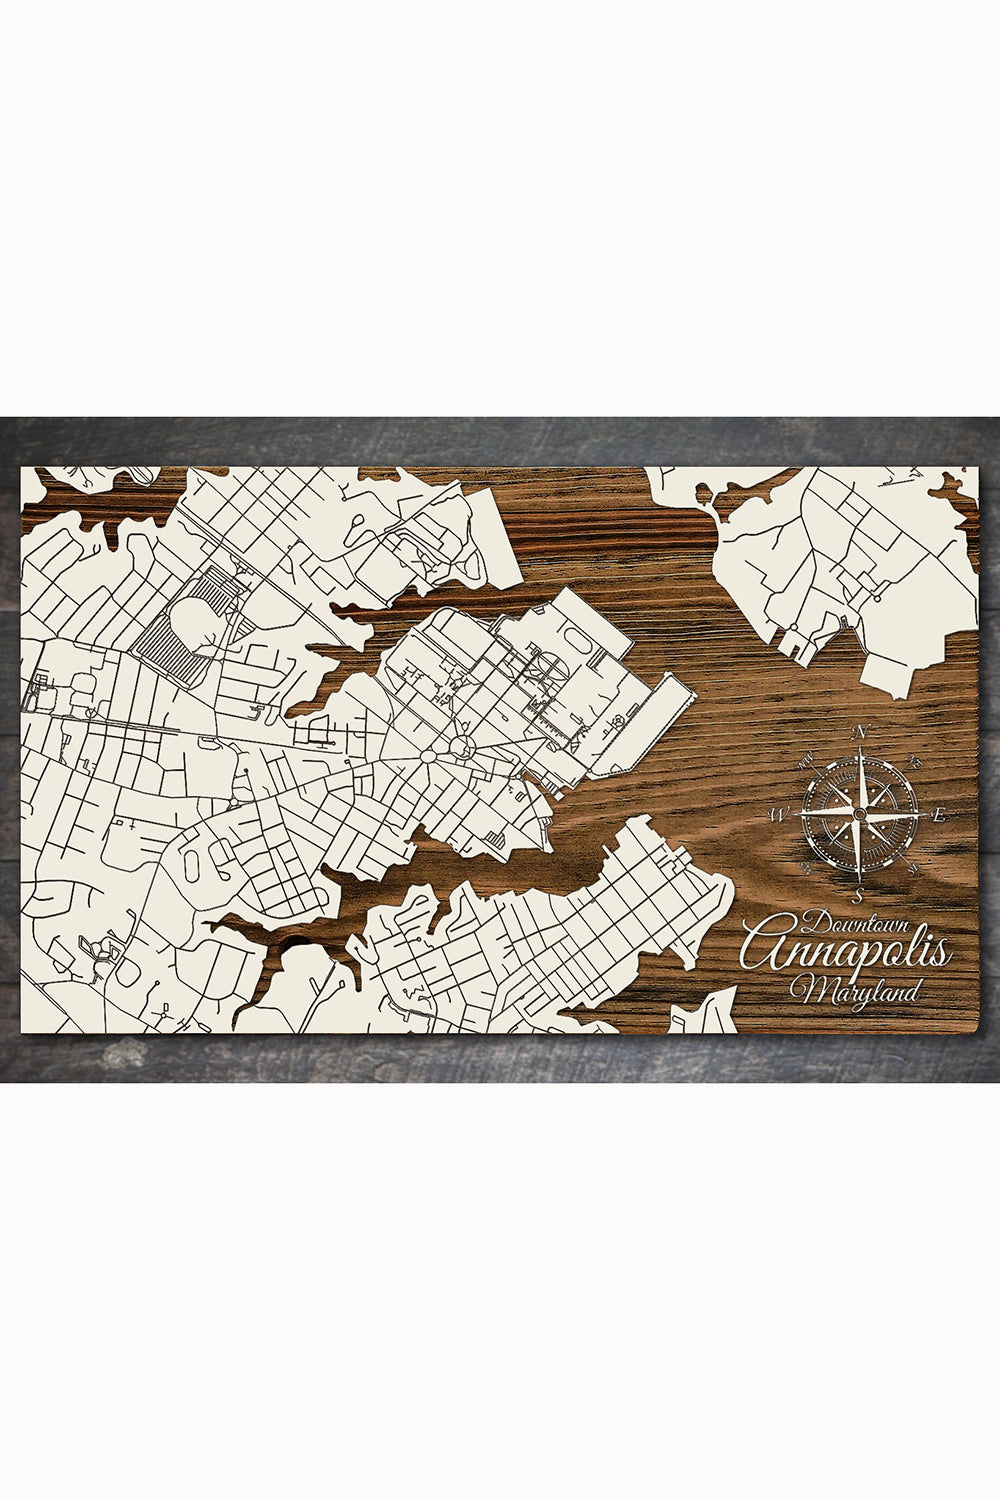 FP Wooden Map - Downtown Annapolis, Maryland (White)